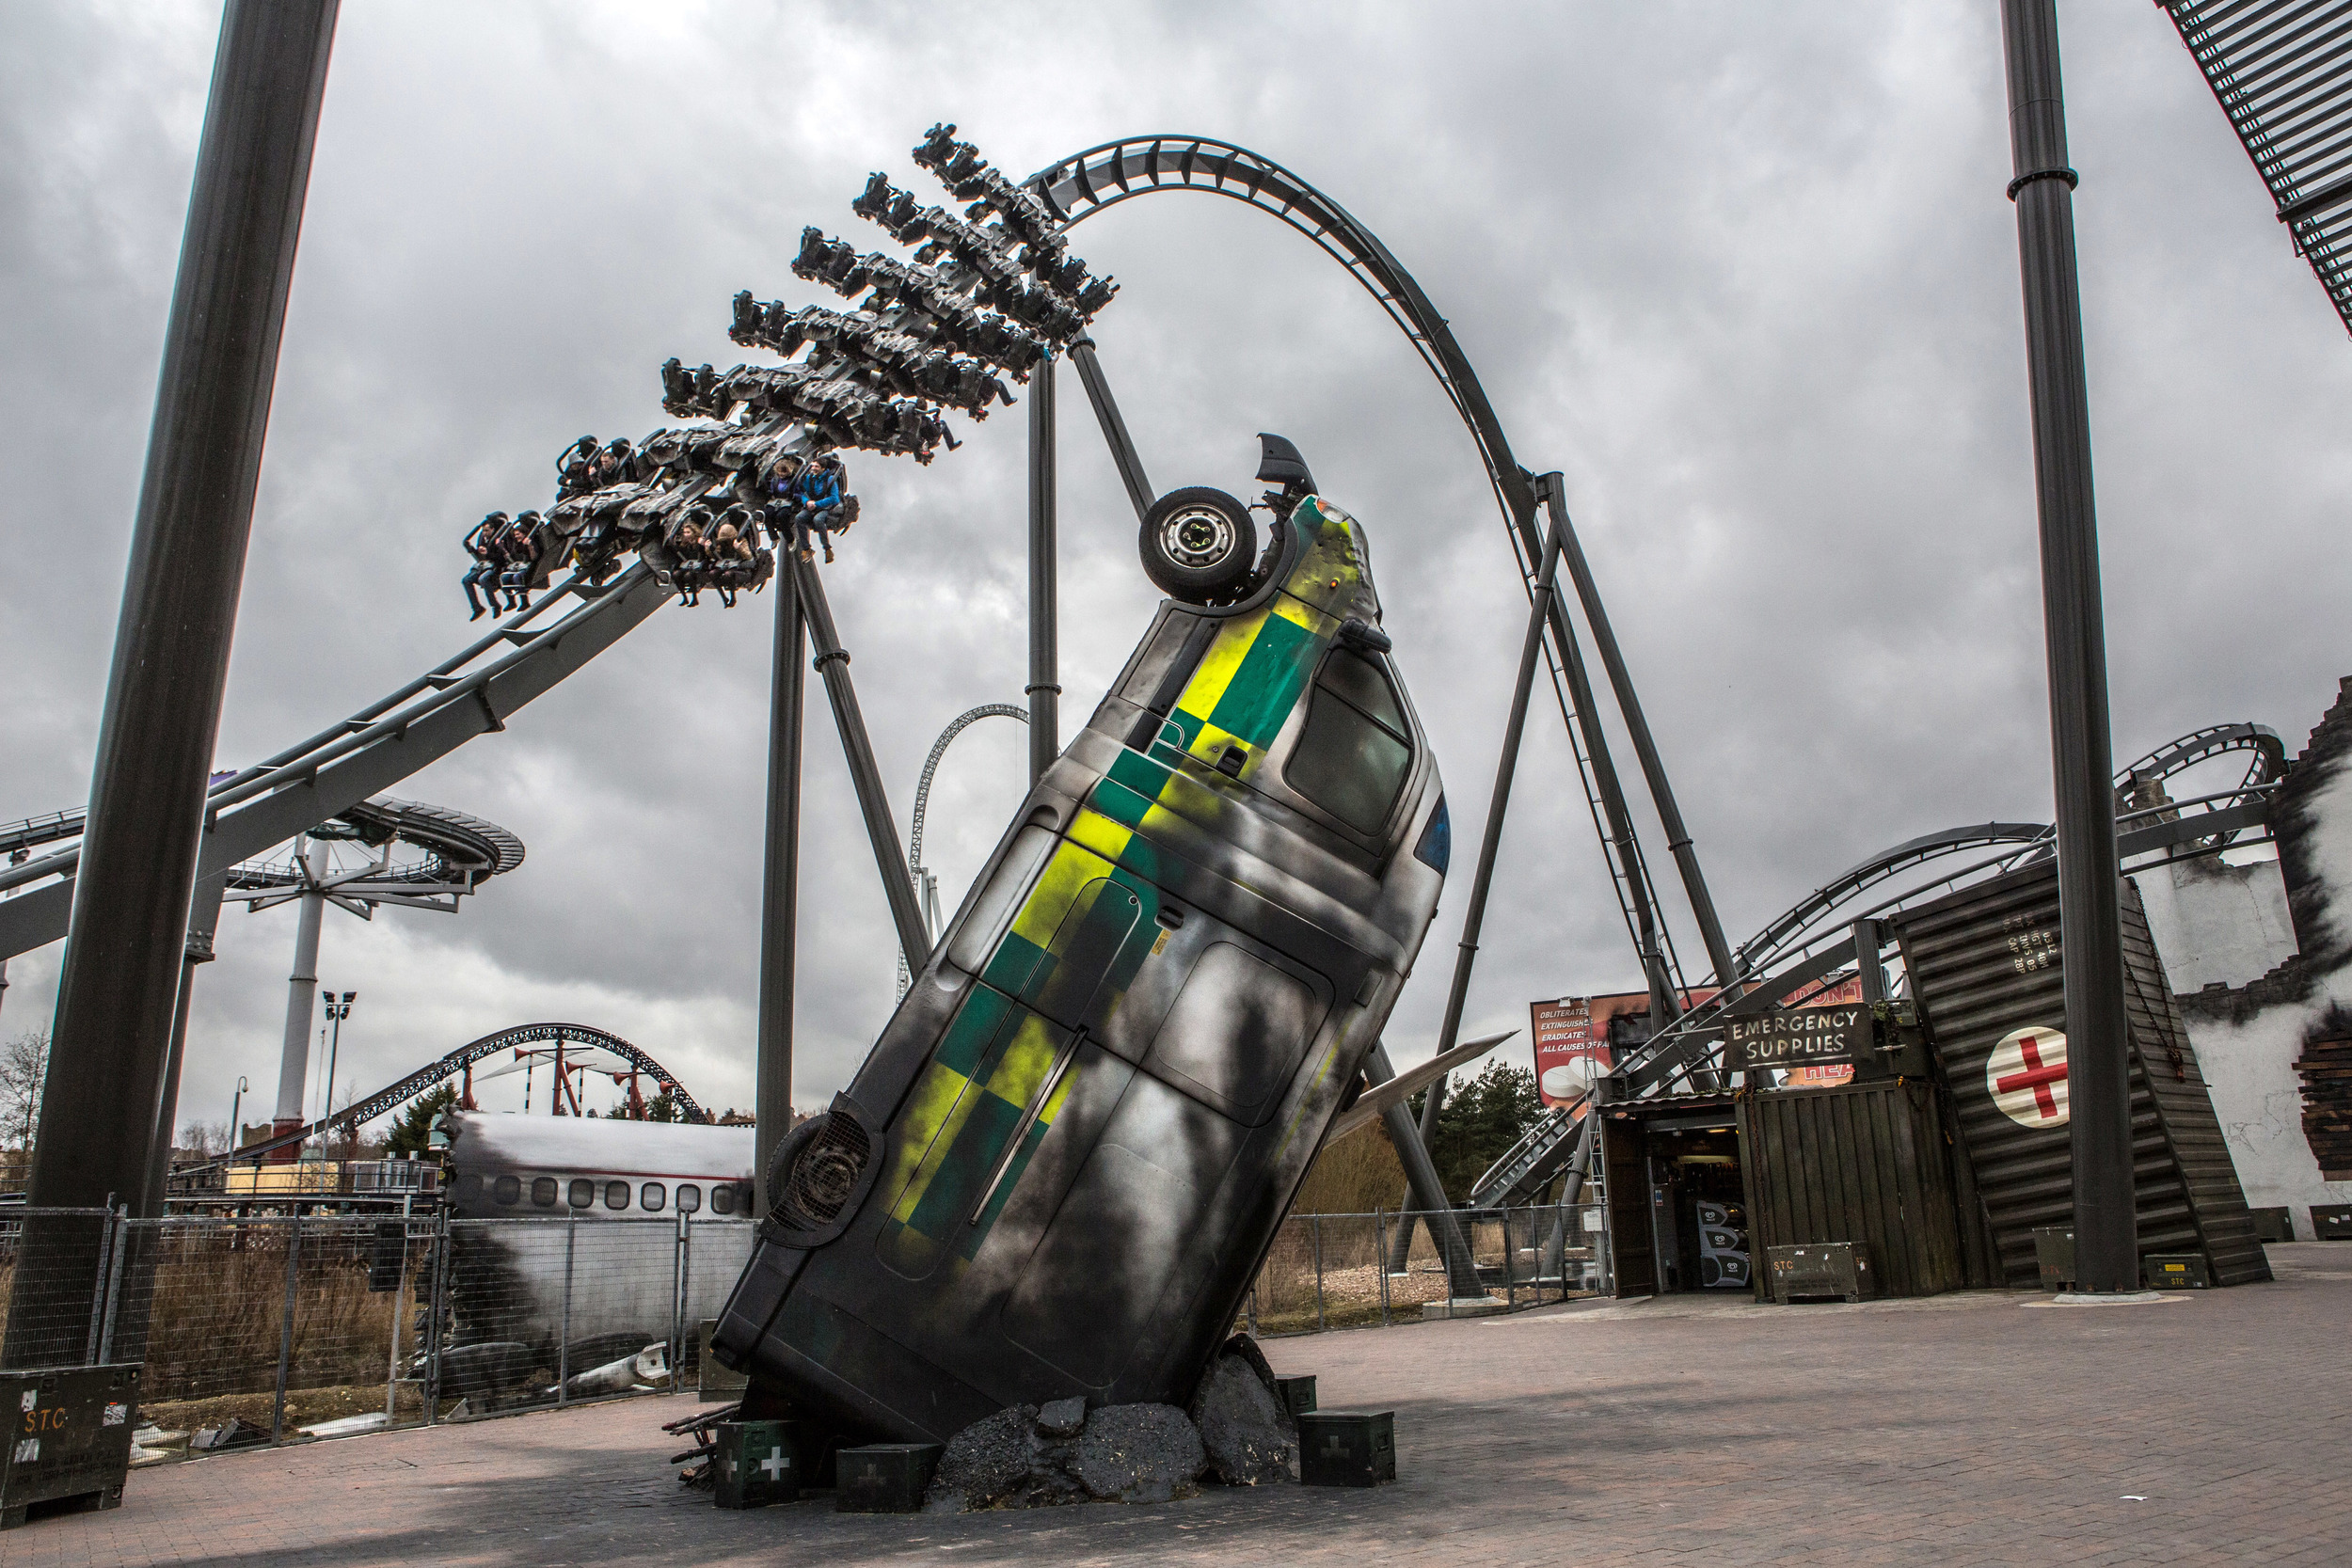 Cracking deals and discounts at Thorpe Park - Northern Mum